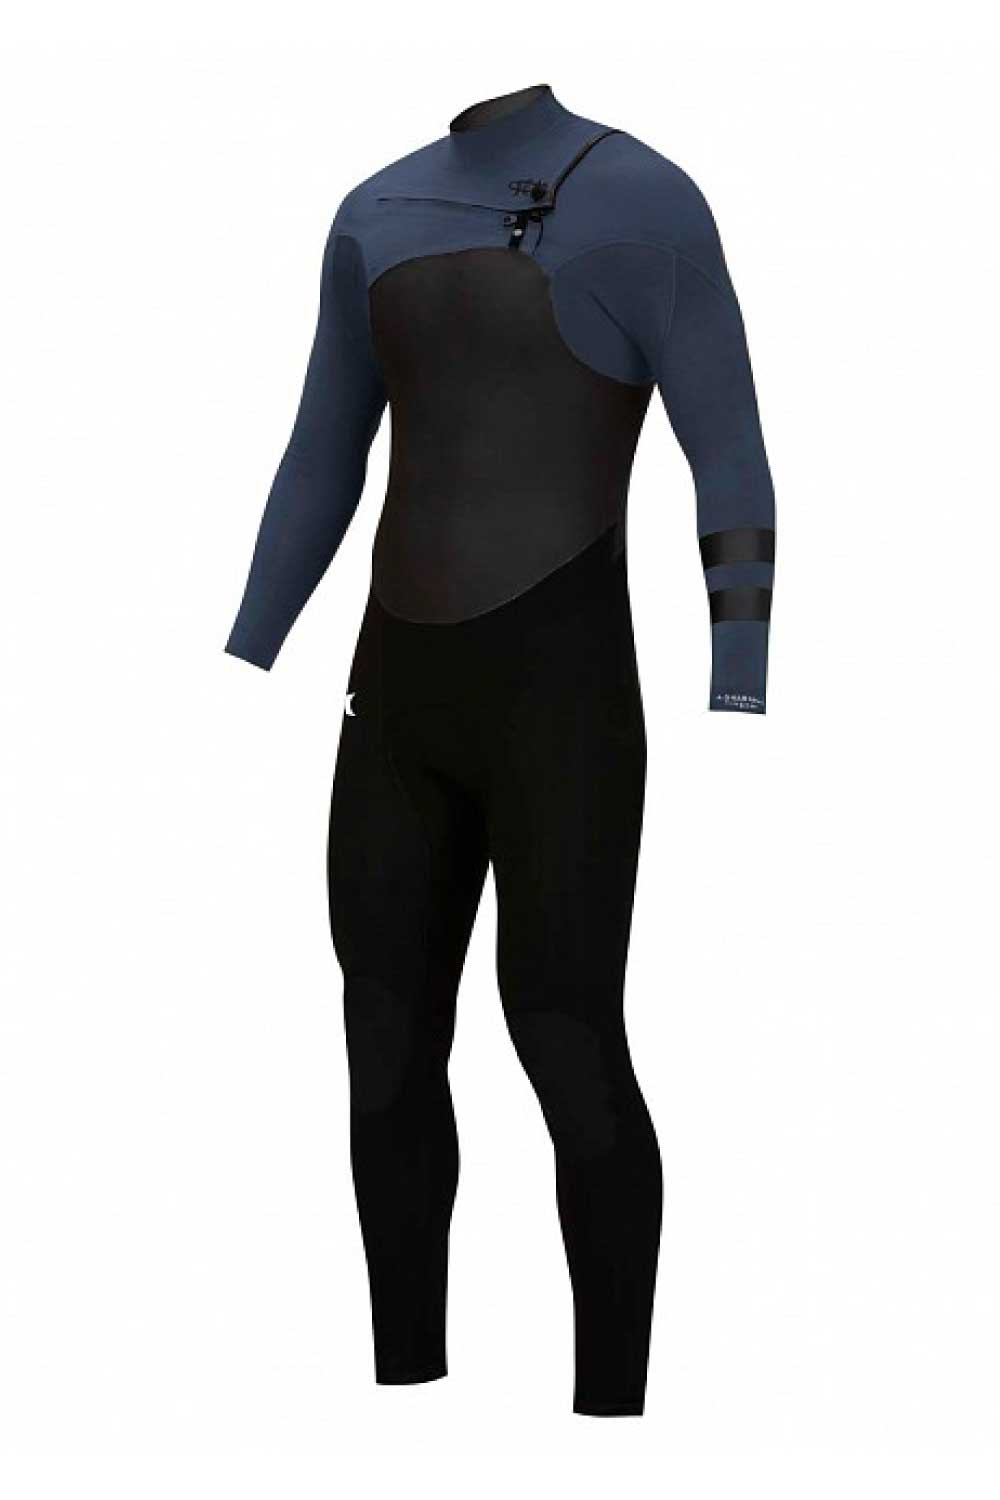 Shop Hurley Steamers | Hurley Boys Advantage Plus 3/2mm Wetsuit Steamer